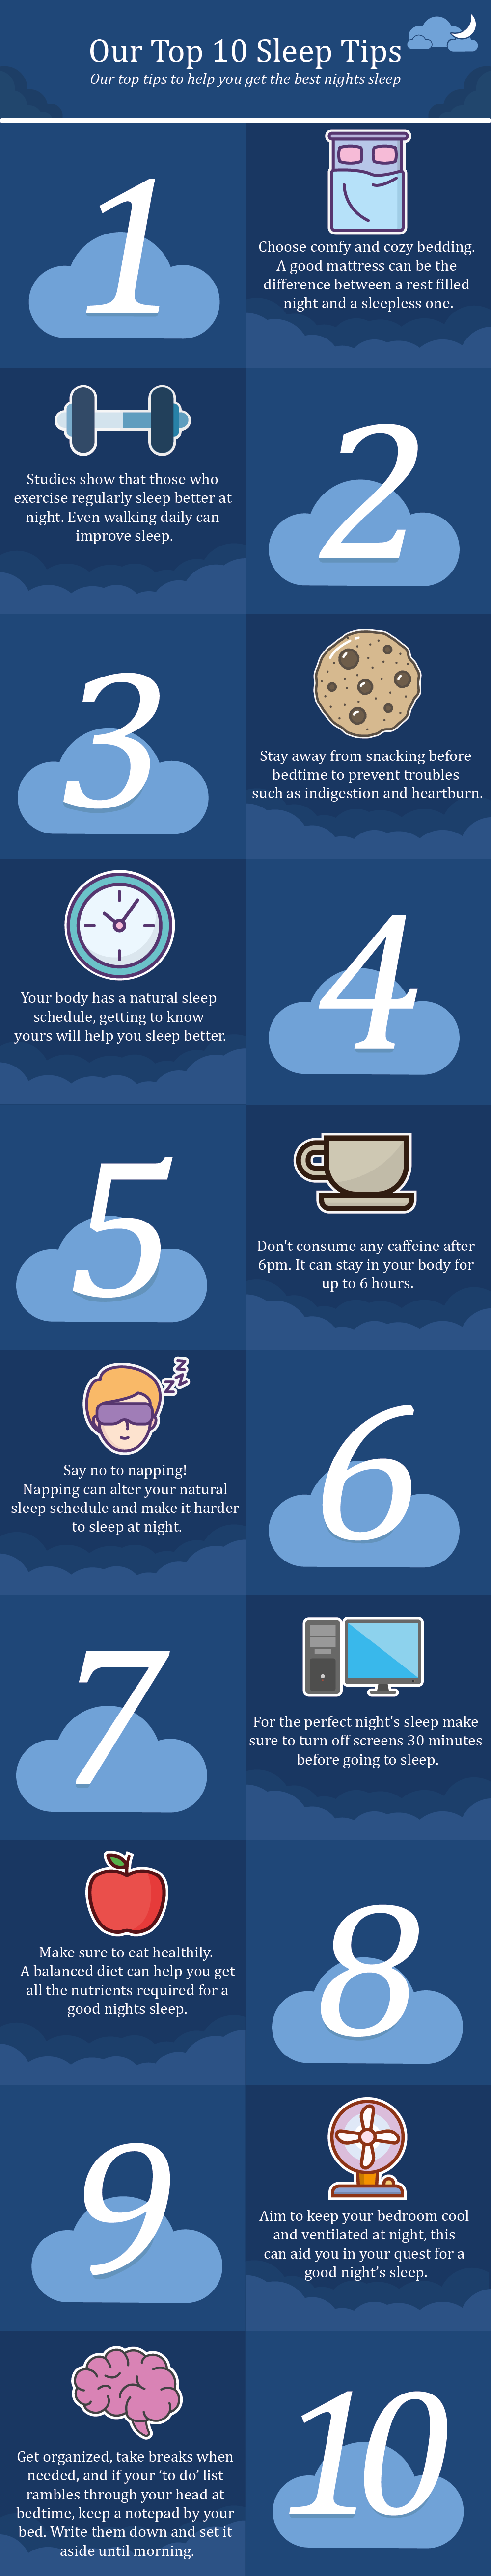 Our top ten sleep tips